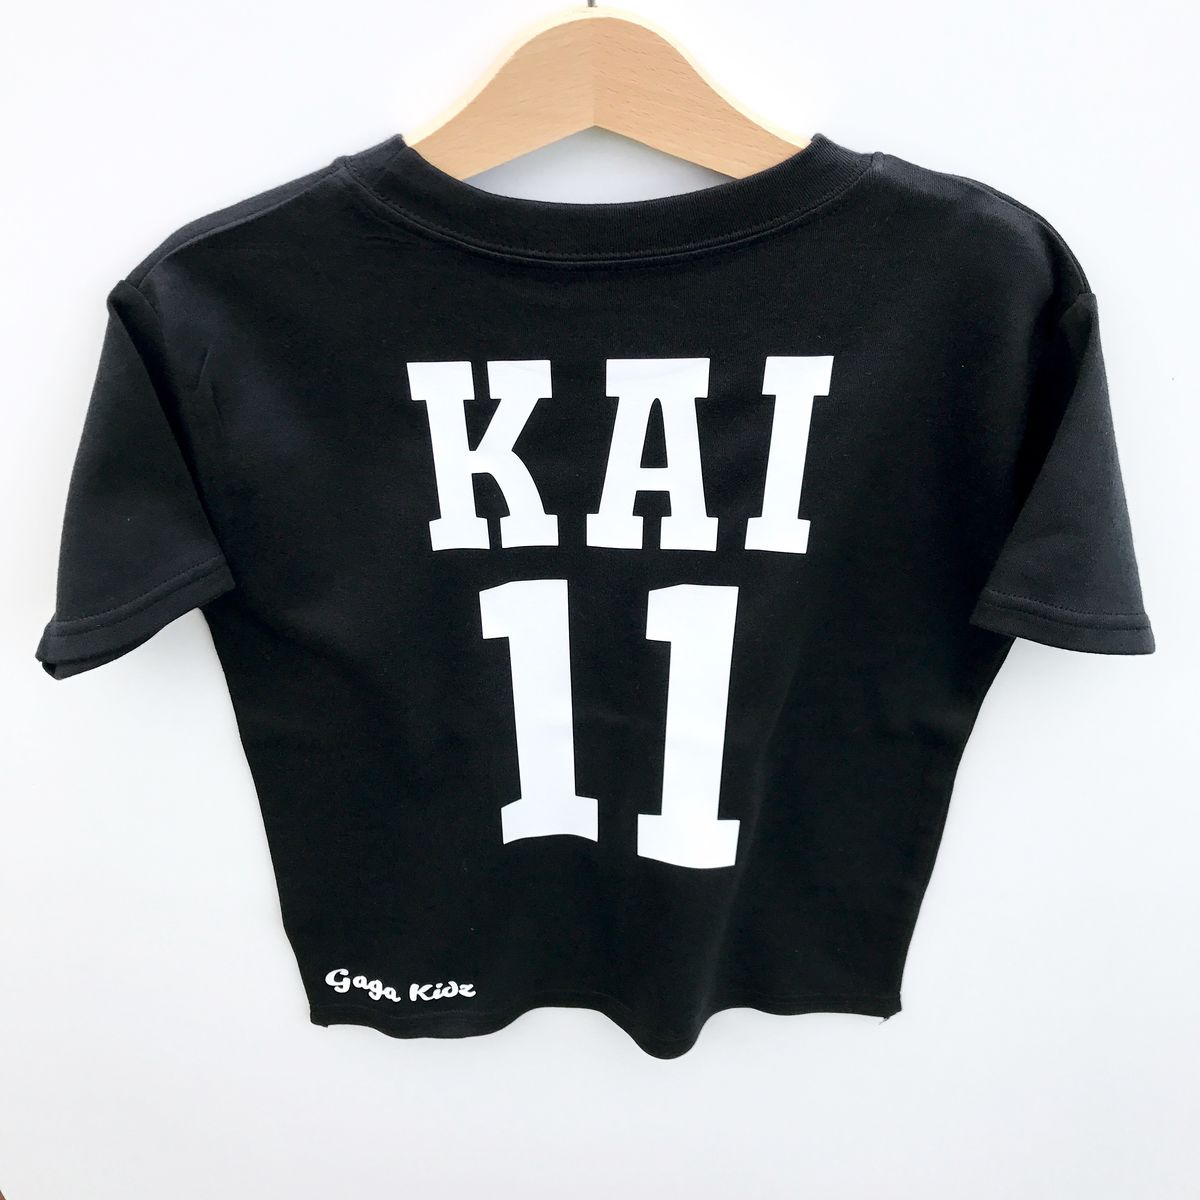 Sports Name/Number Black or White T-Shirt - product images  of